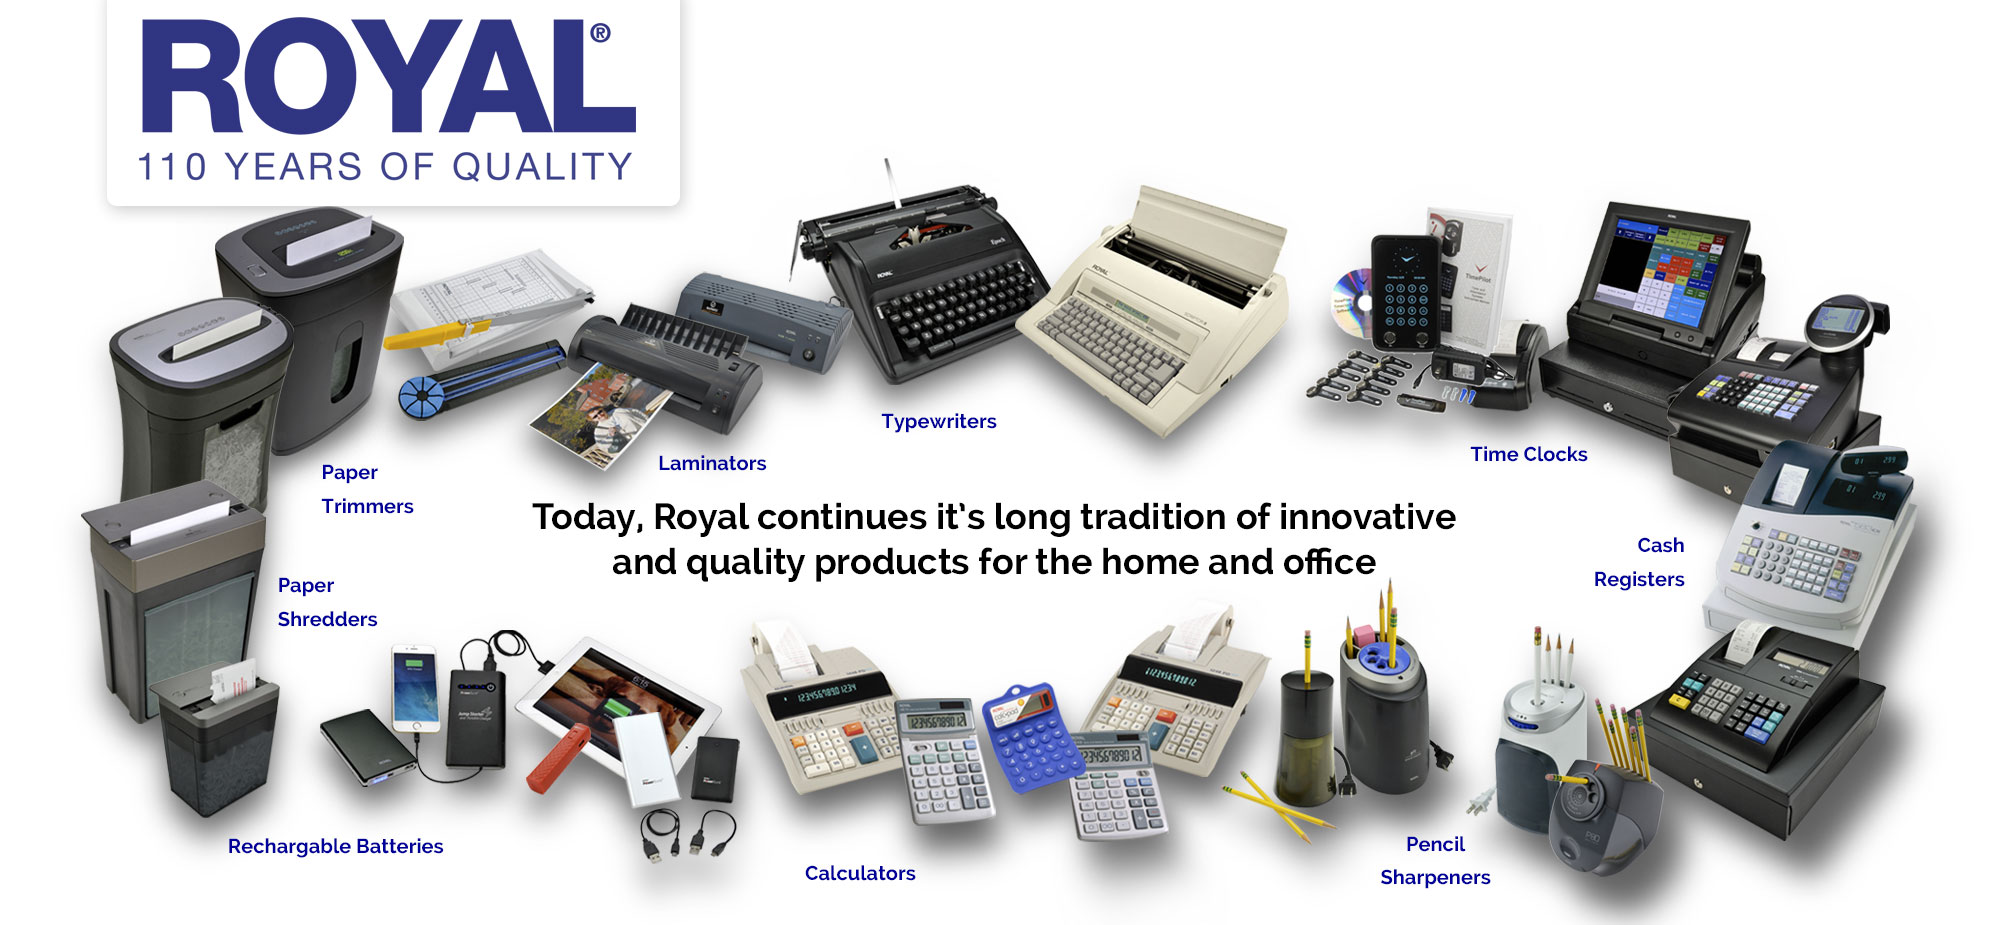 Royal Consumer Products | Innovators of home and office products